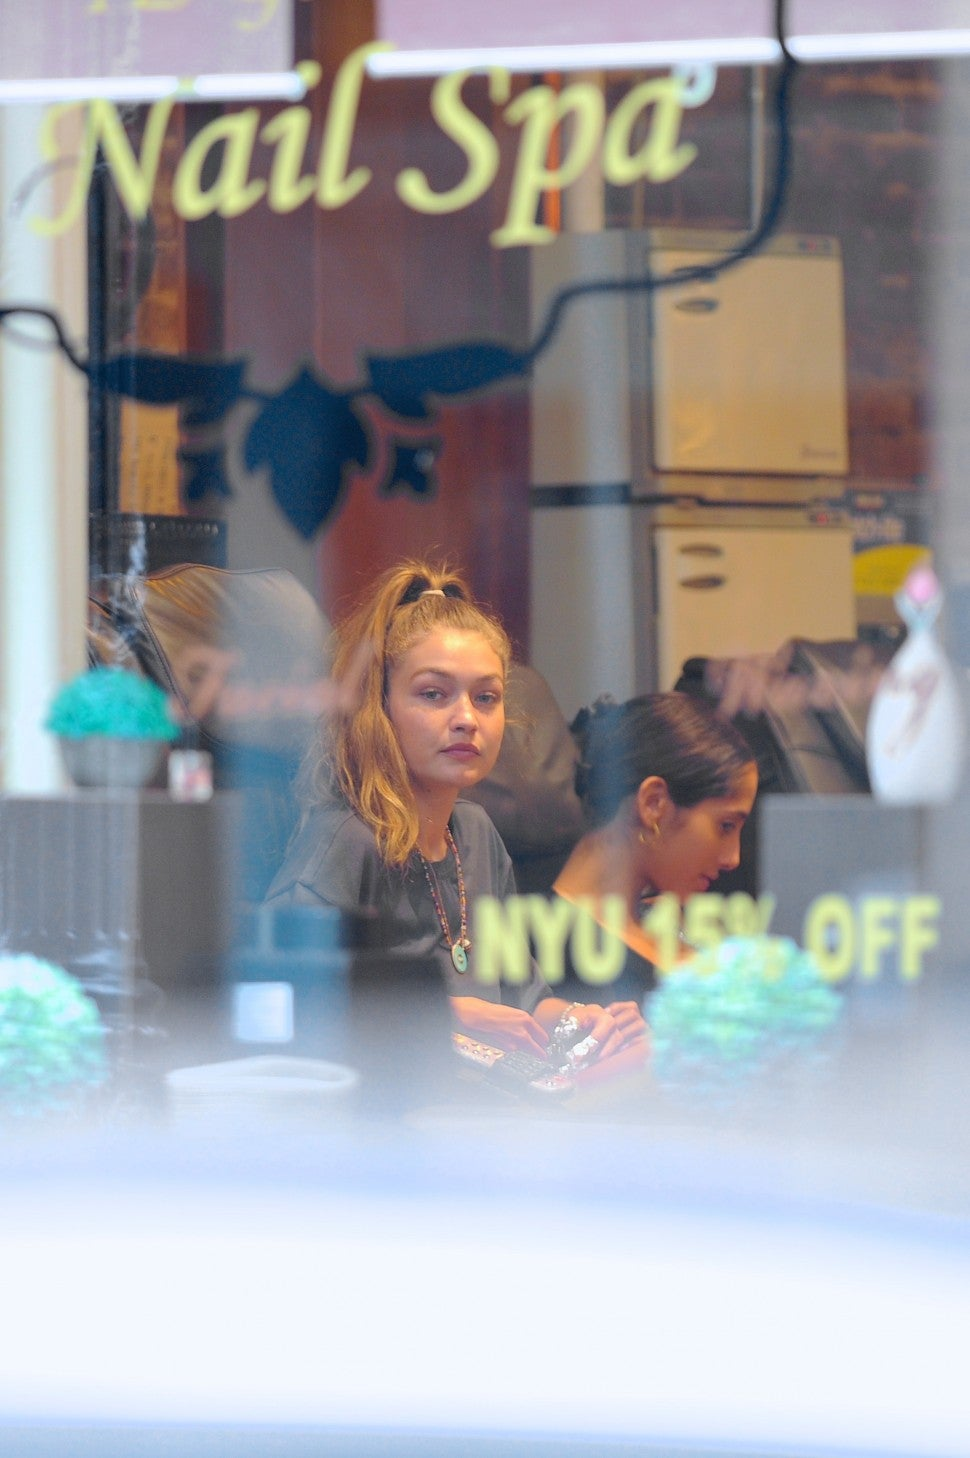 gigi Hadid at nail salon in nyc